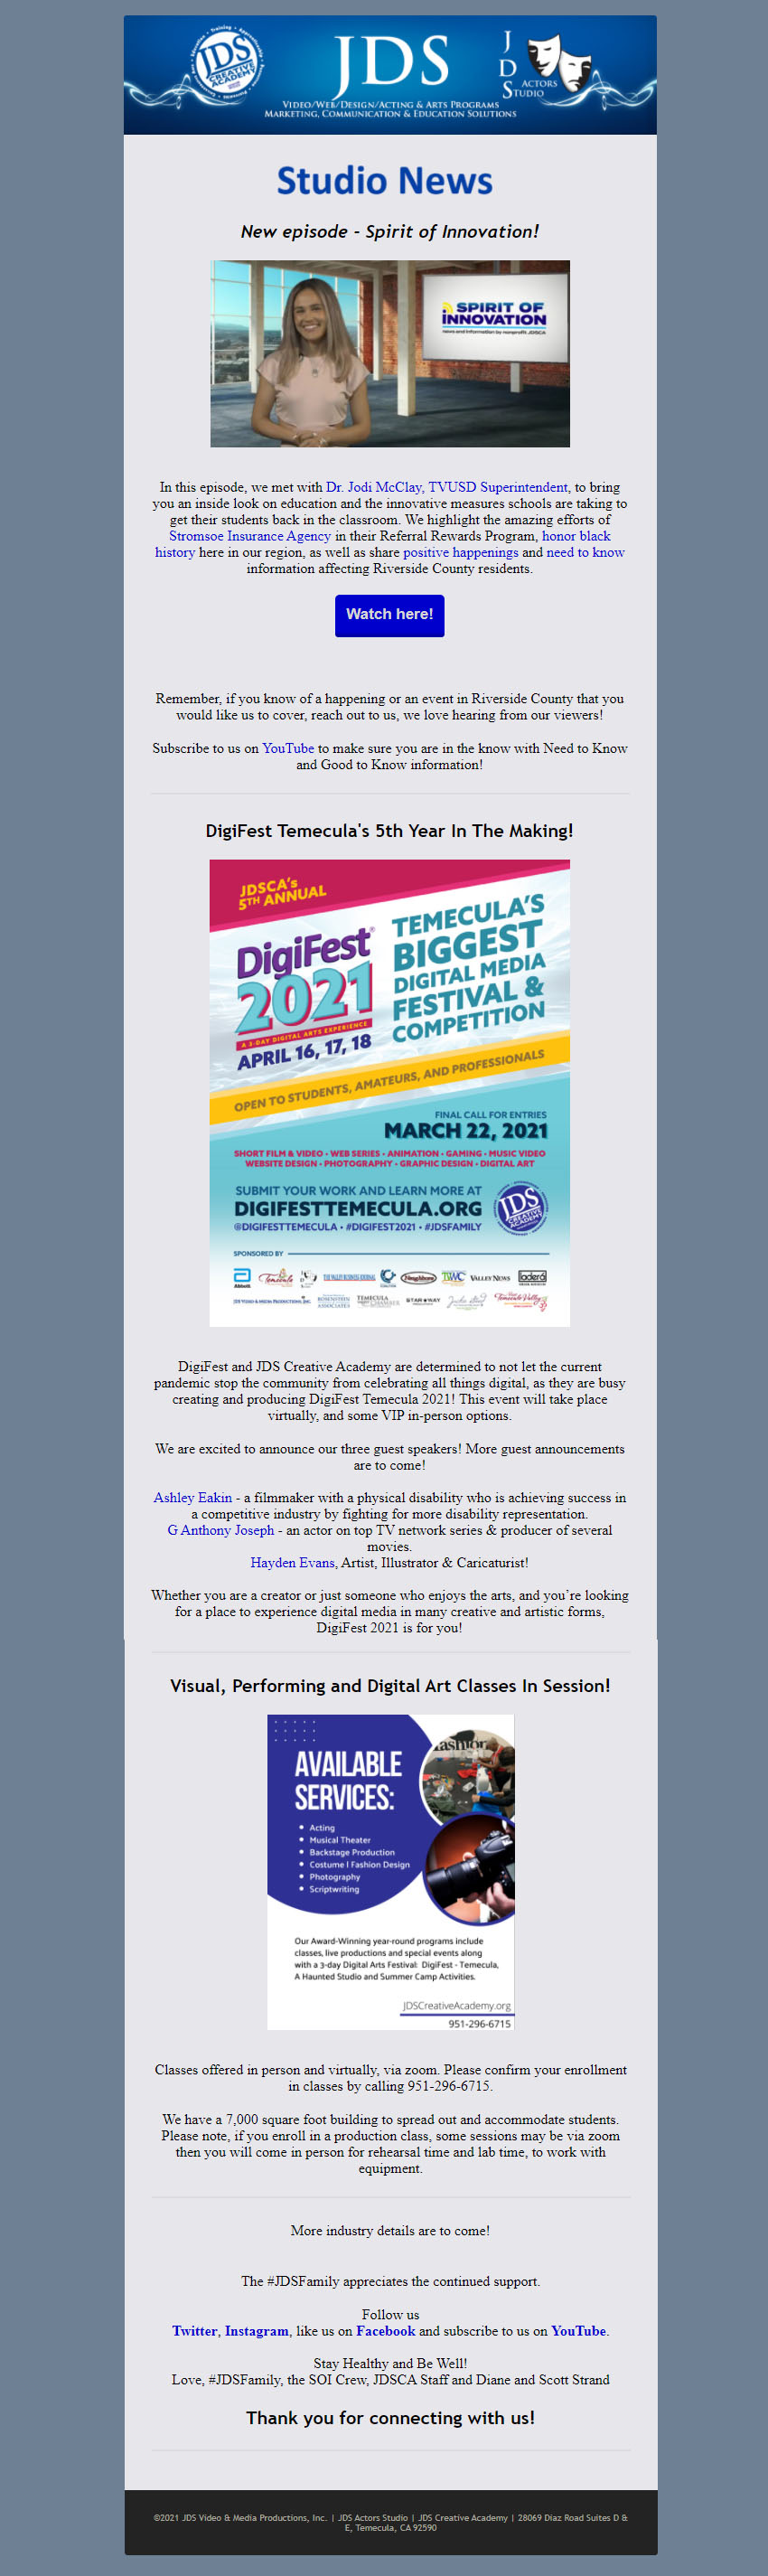 Spirit of Innovation New Episode, DigiFest 2021 and Creative Classes For All Ages